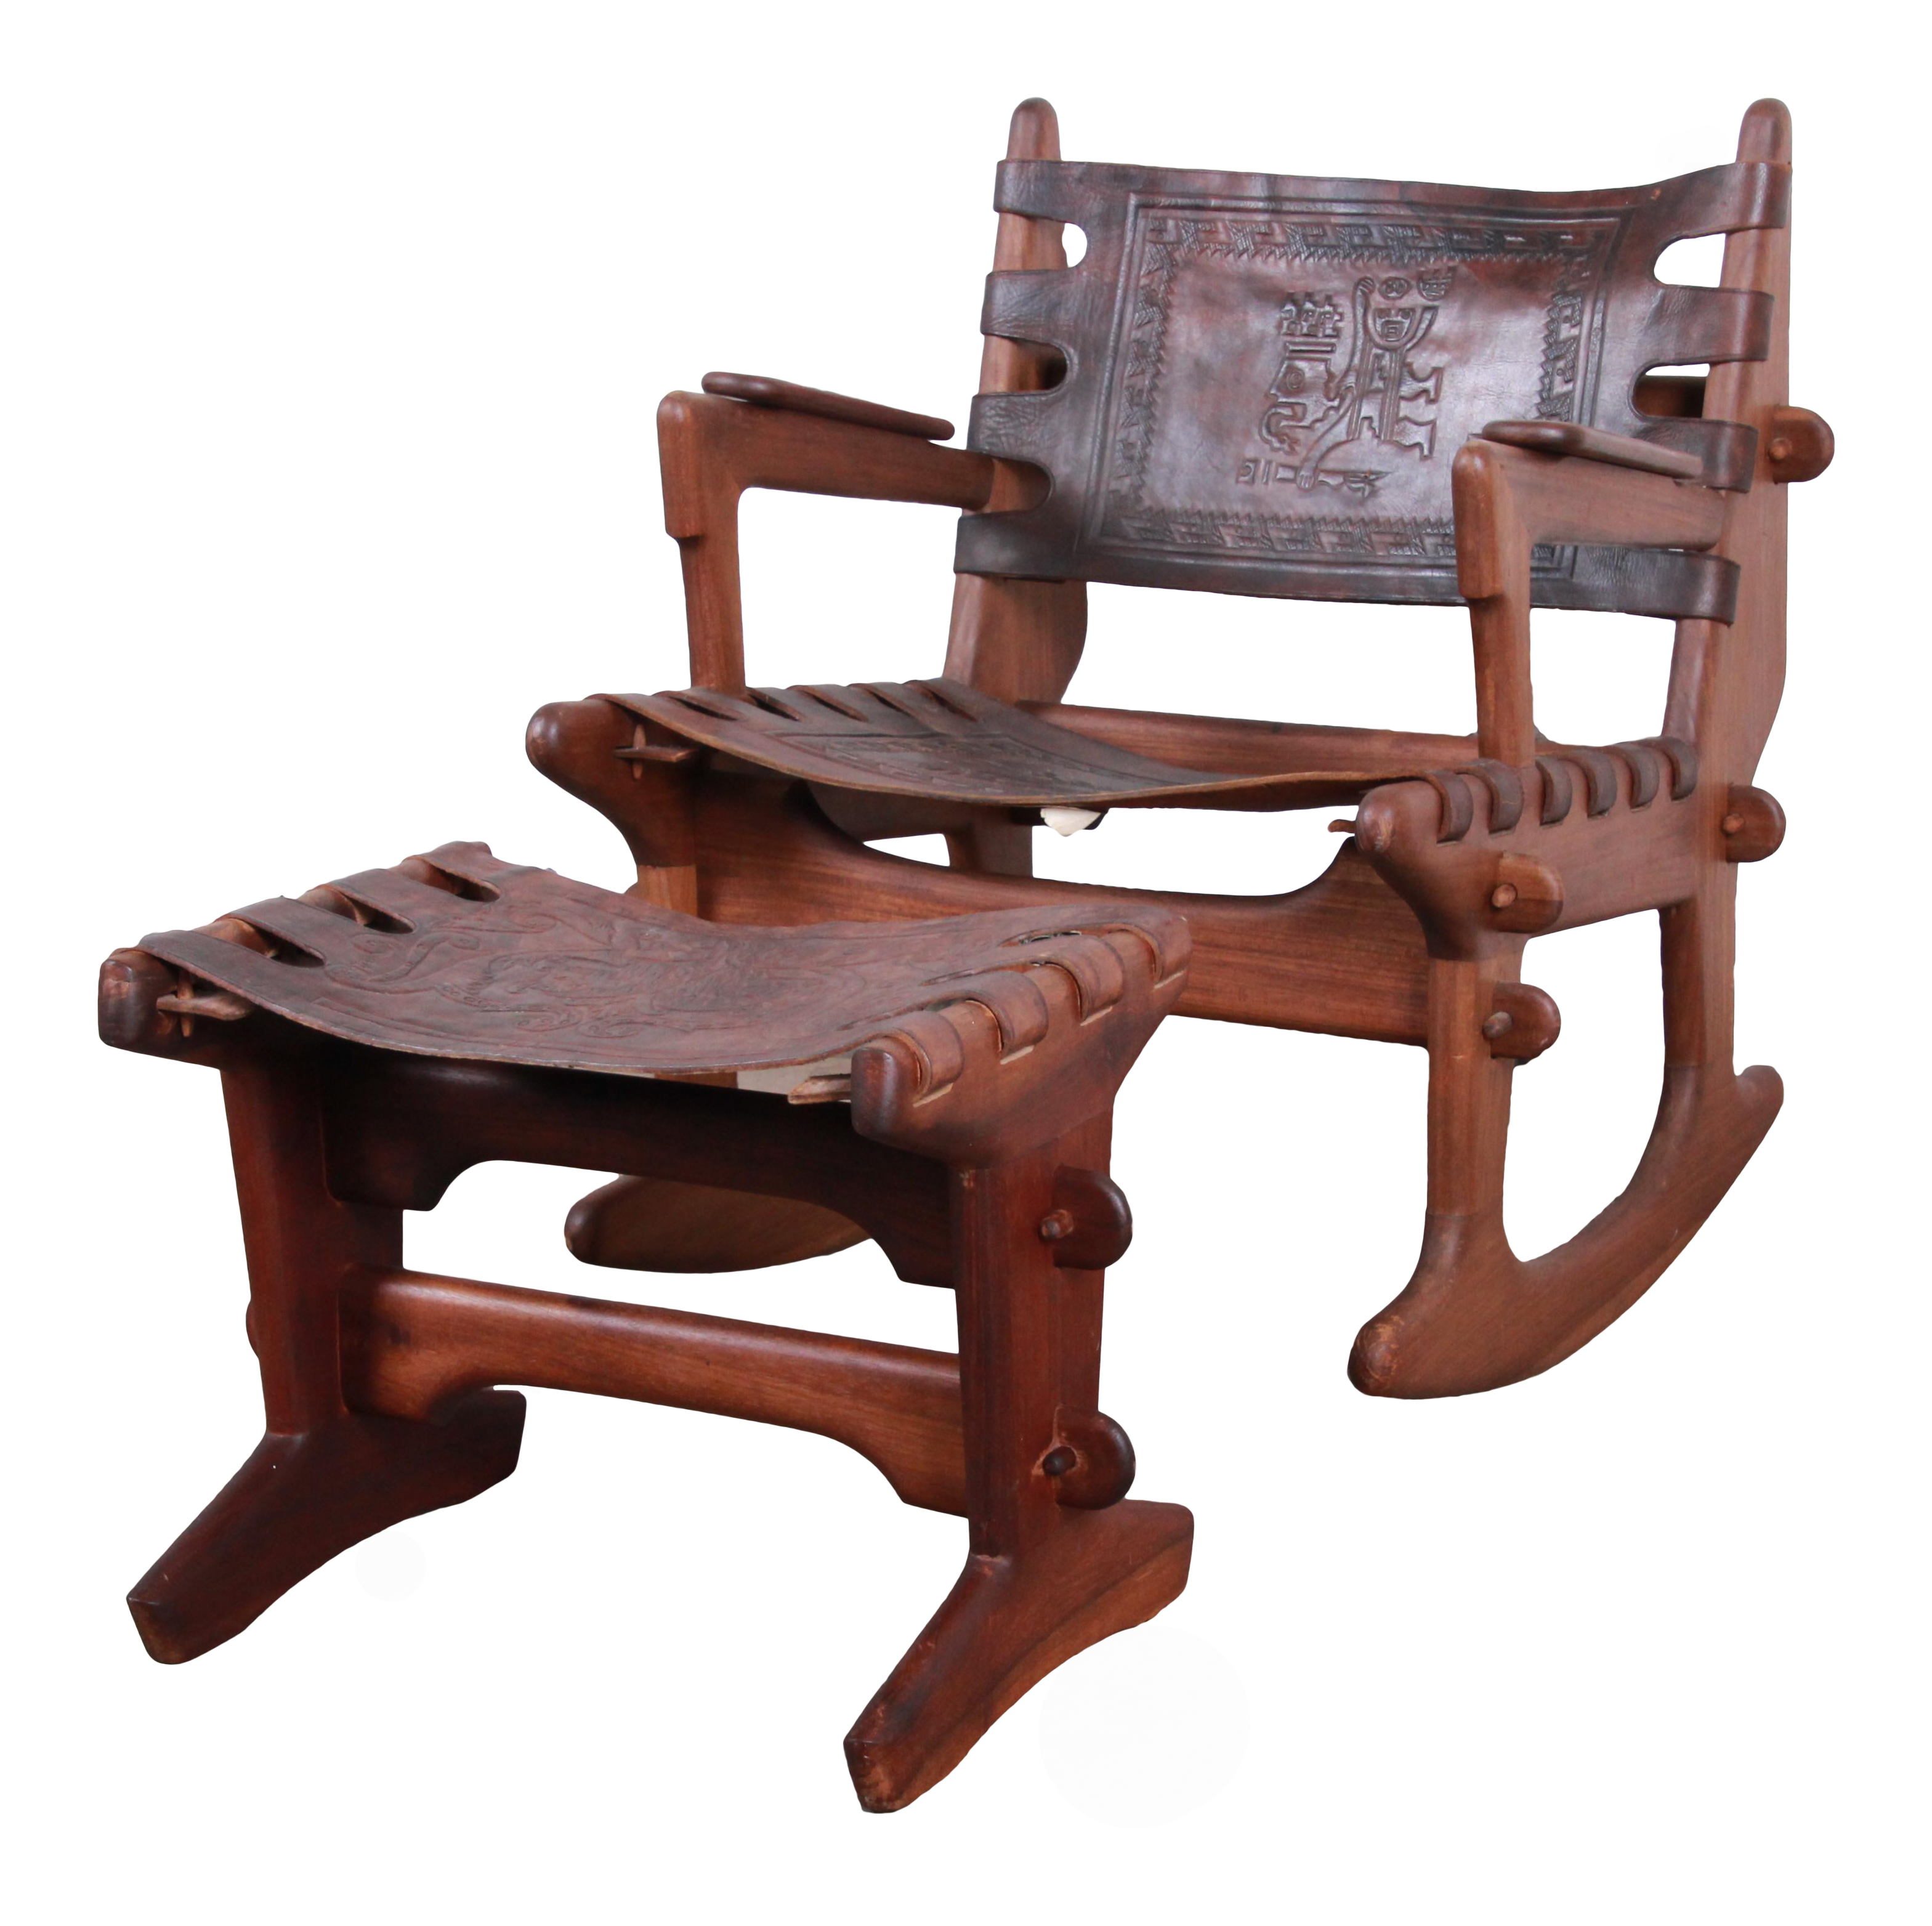 Outstanding Angel Pazmino Teak And Leather Rocking Chair With Ottoman Ecuador 1960S Short Links Chair Design For Home Short Linksinfo